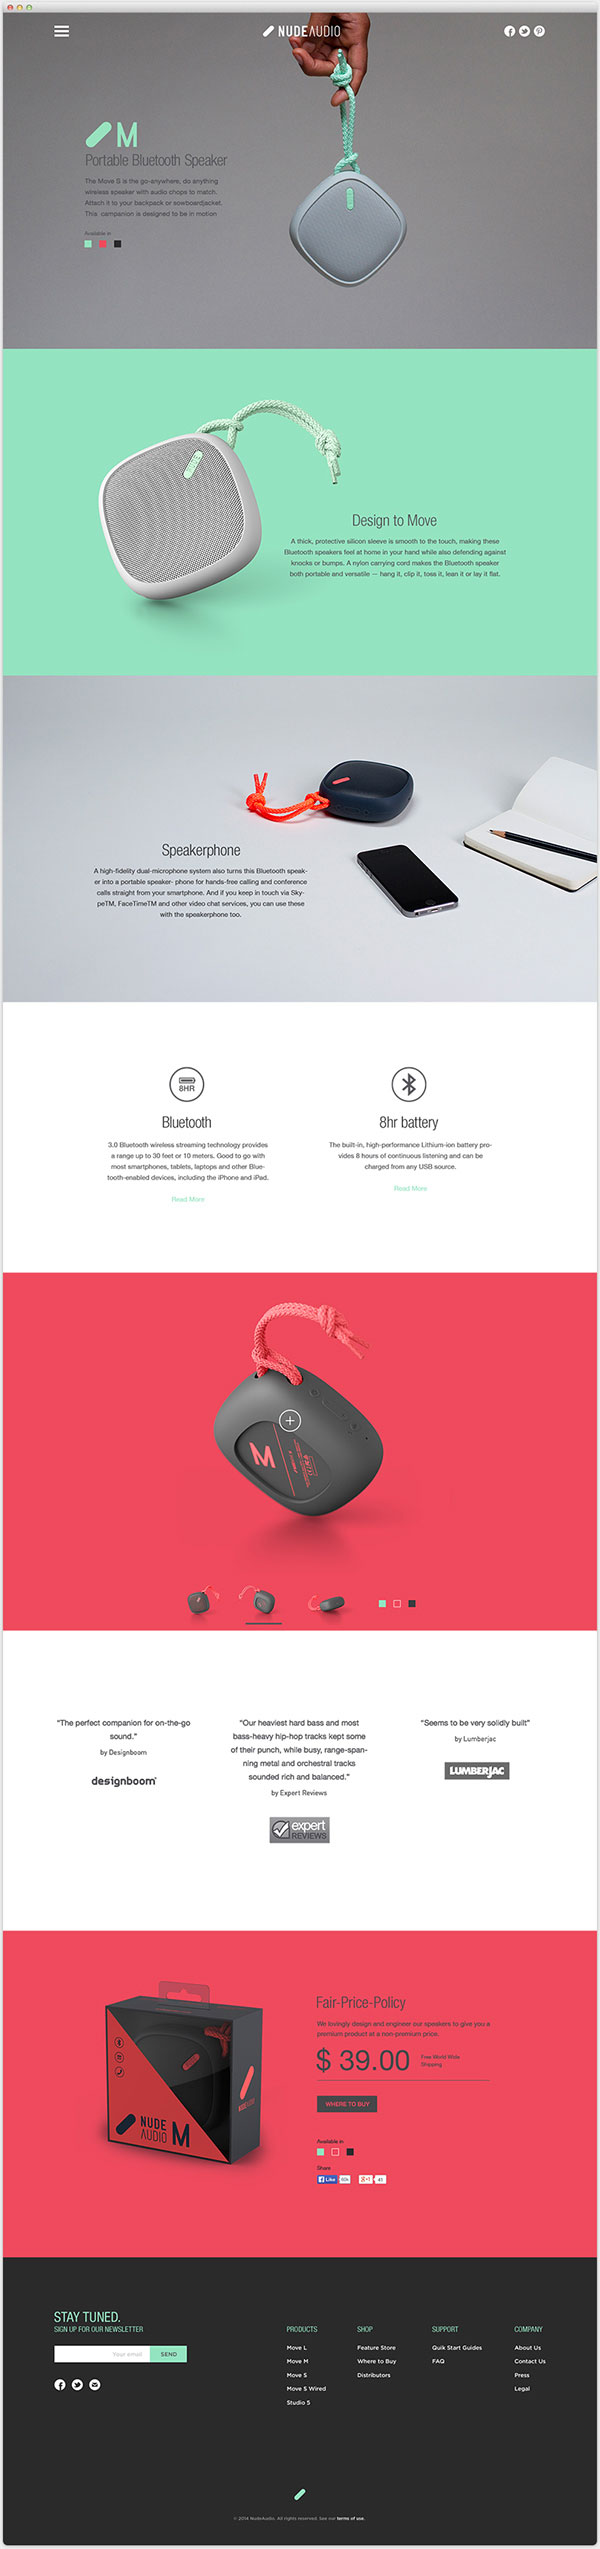 Nude Audio Product Web Design Inspiration